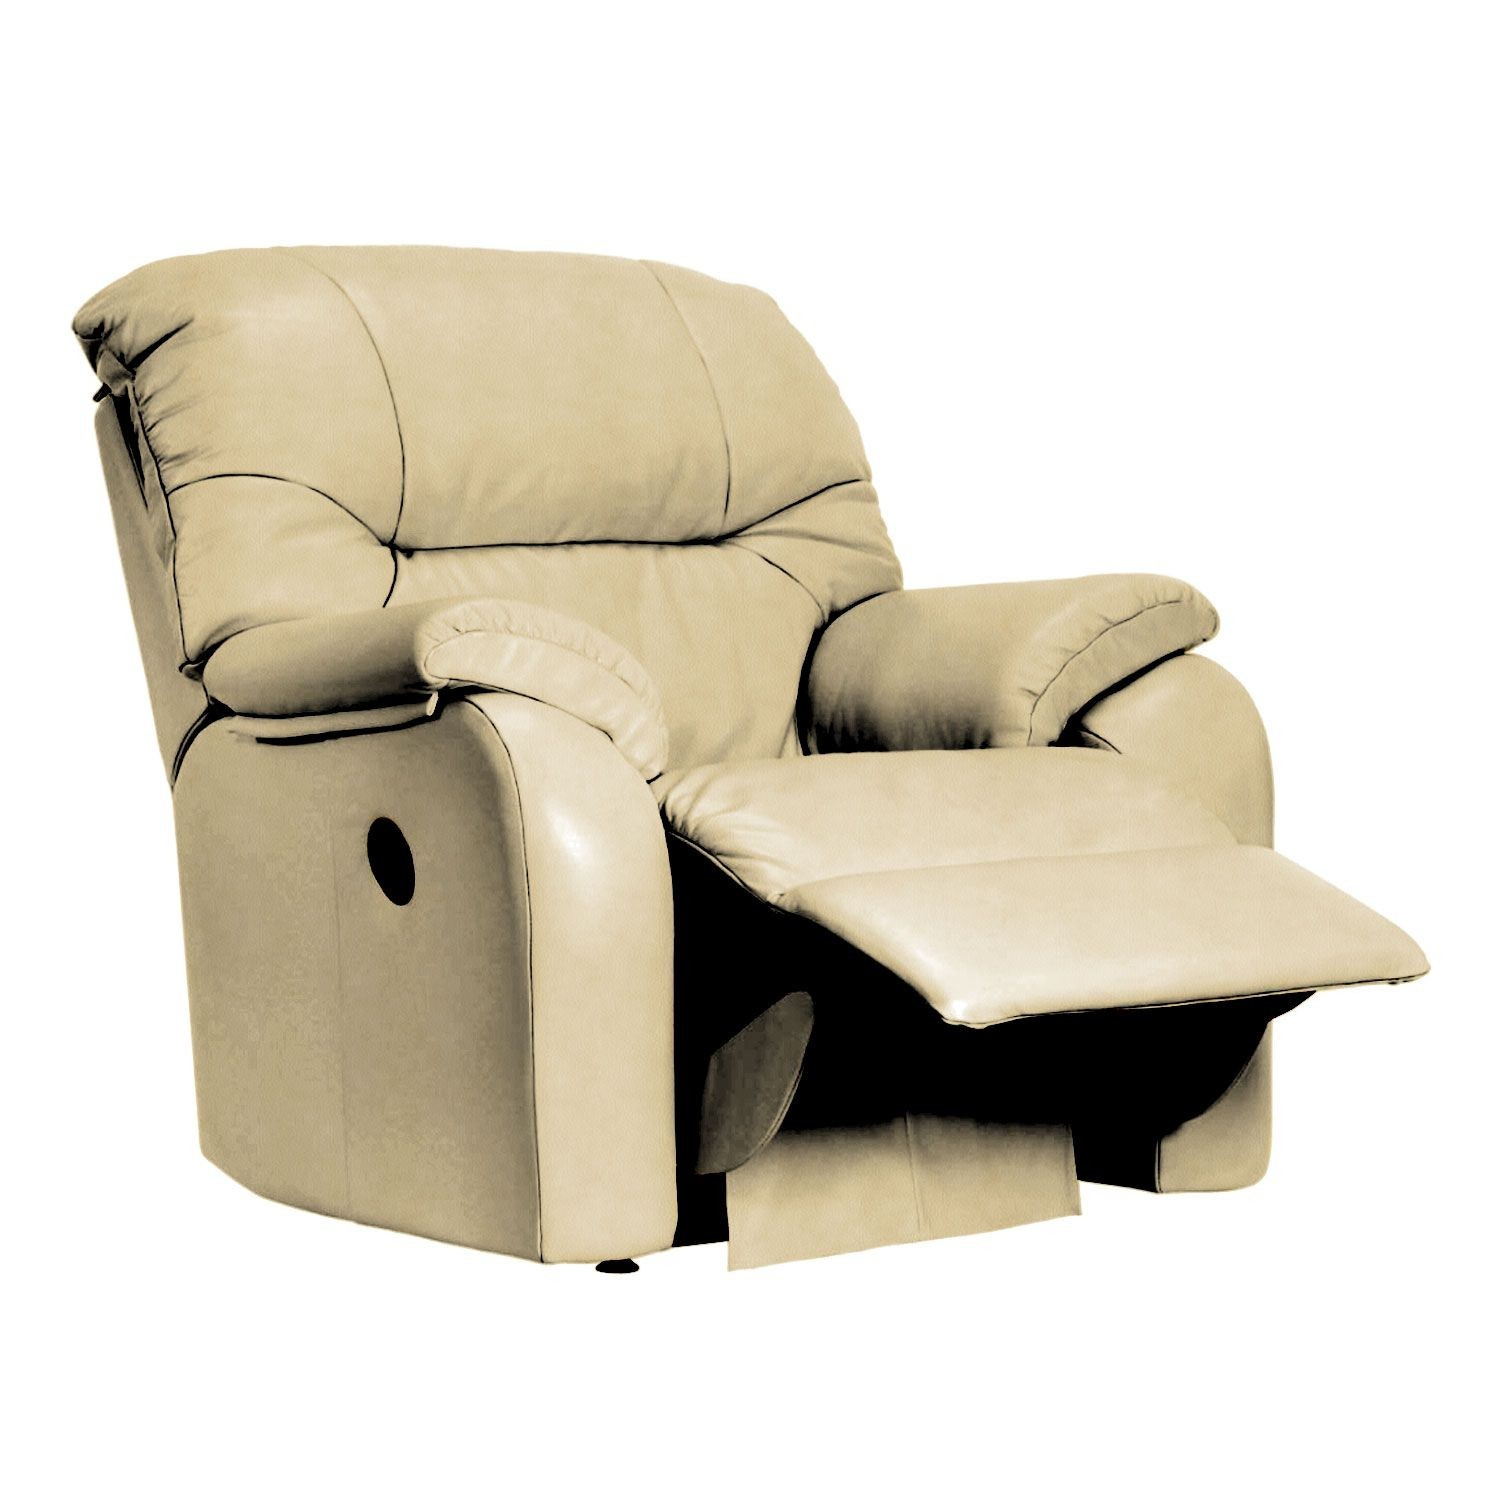 Incredible G Plan Mistral Power Recliner Leather Armchair Ibusinesslaw Wood Chair Design Ideas Ibusinesslaworg